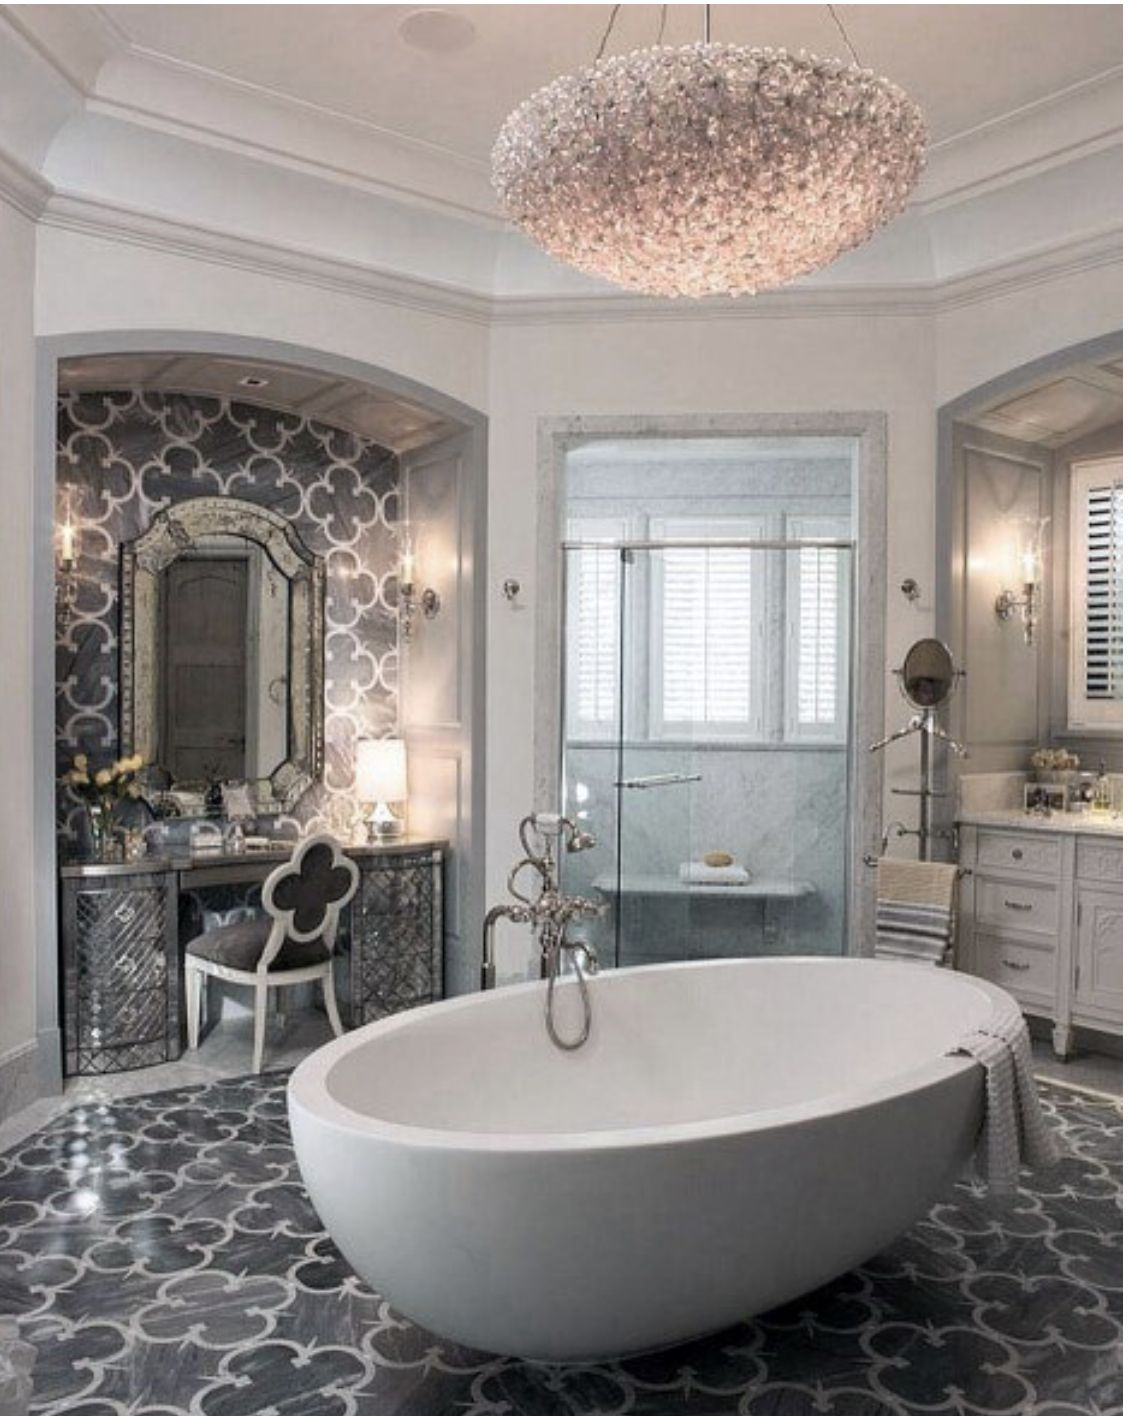 pin by chelsea kaplan on master bath with images on best bathroom renovation ideas get your dream bathroom id=14697